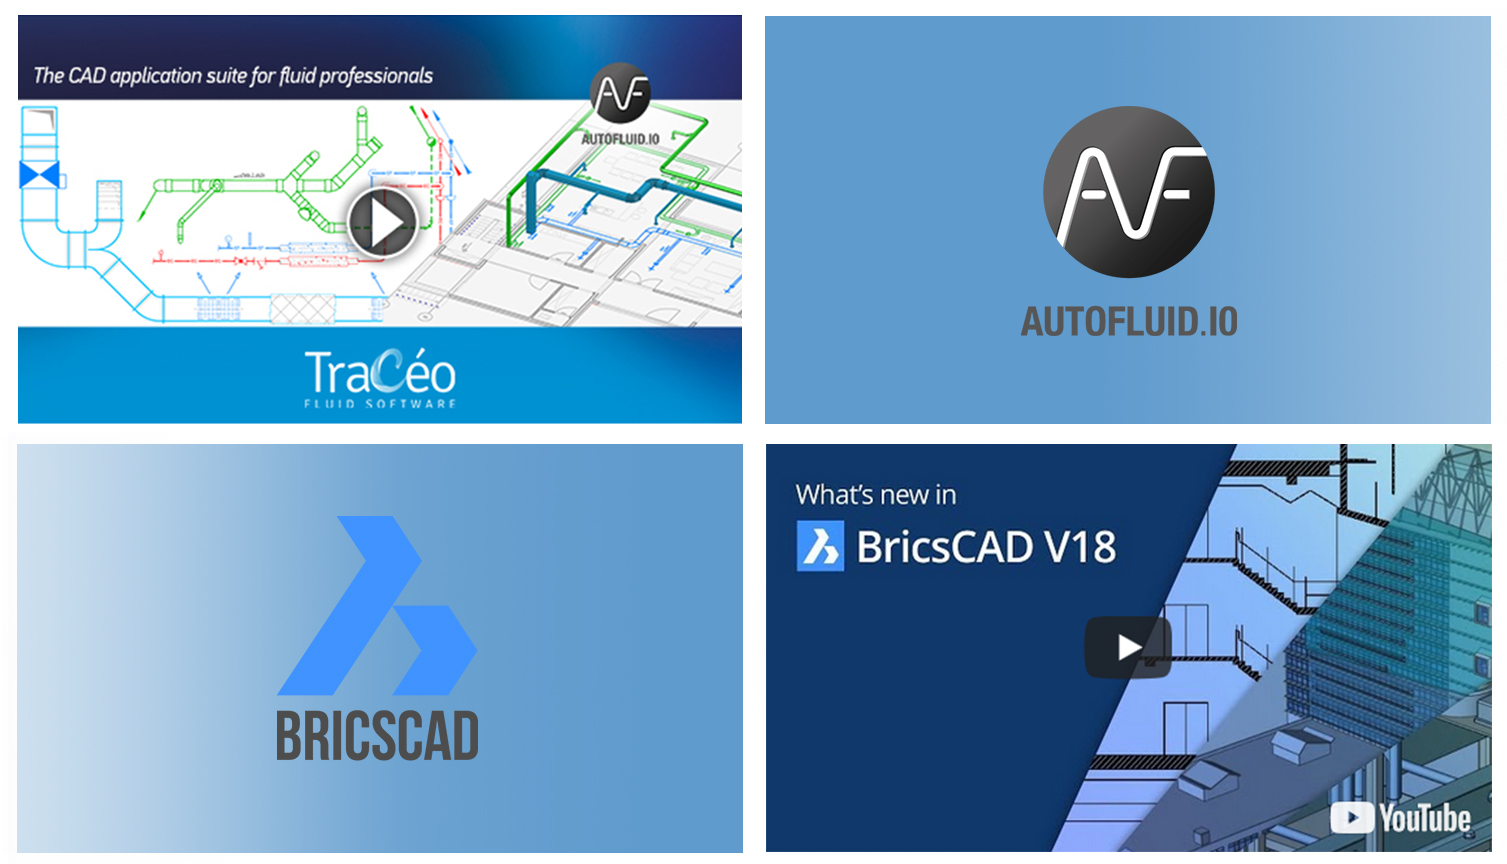 AUTOFLUID 10 is now compatible with BricsCAD V18 – Watch the